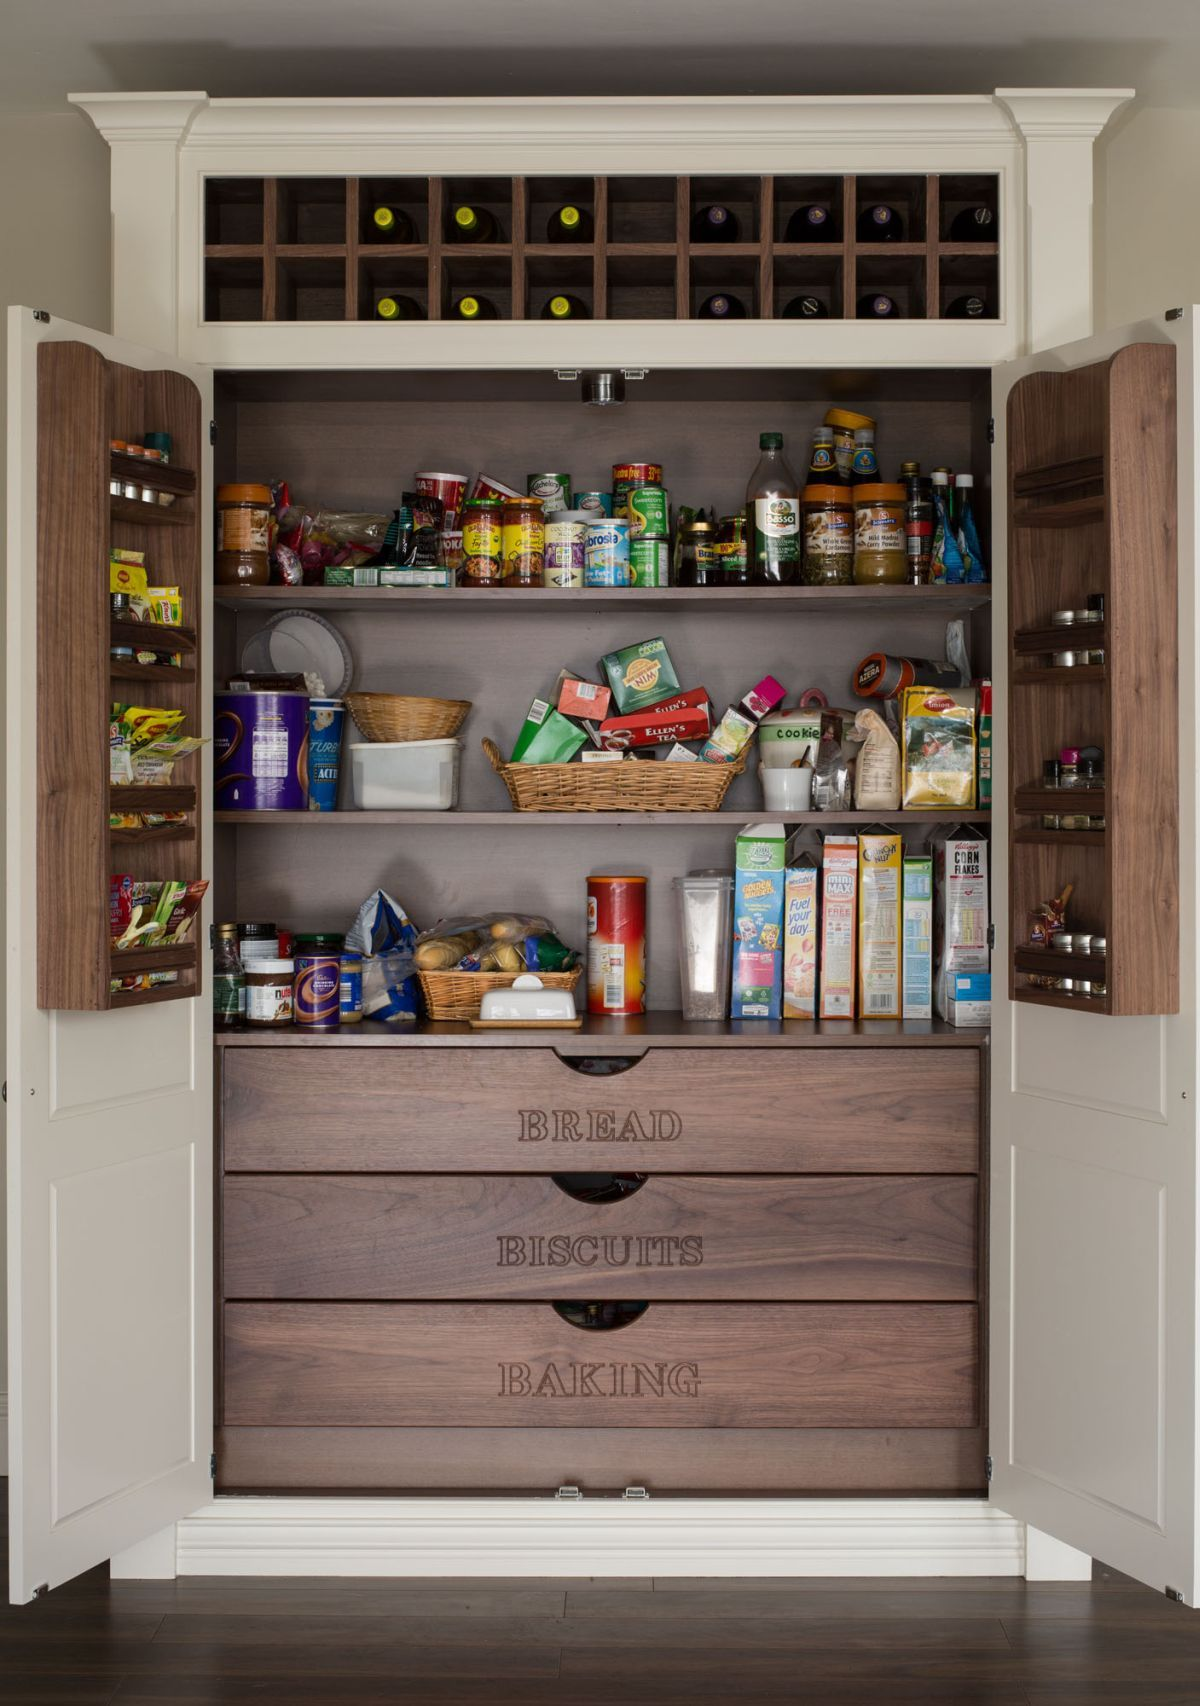 Kitchen Pantry Room Design Narrow Pantry Ideas Walk In Larder Design Kitchen Pantry Room From Kitchen Pant Kitchen Pantry Design Pantry Design Built In Pantry